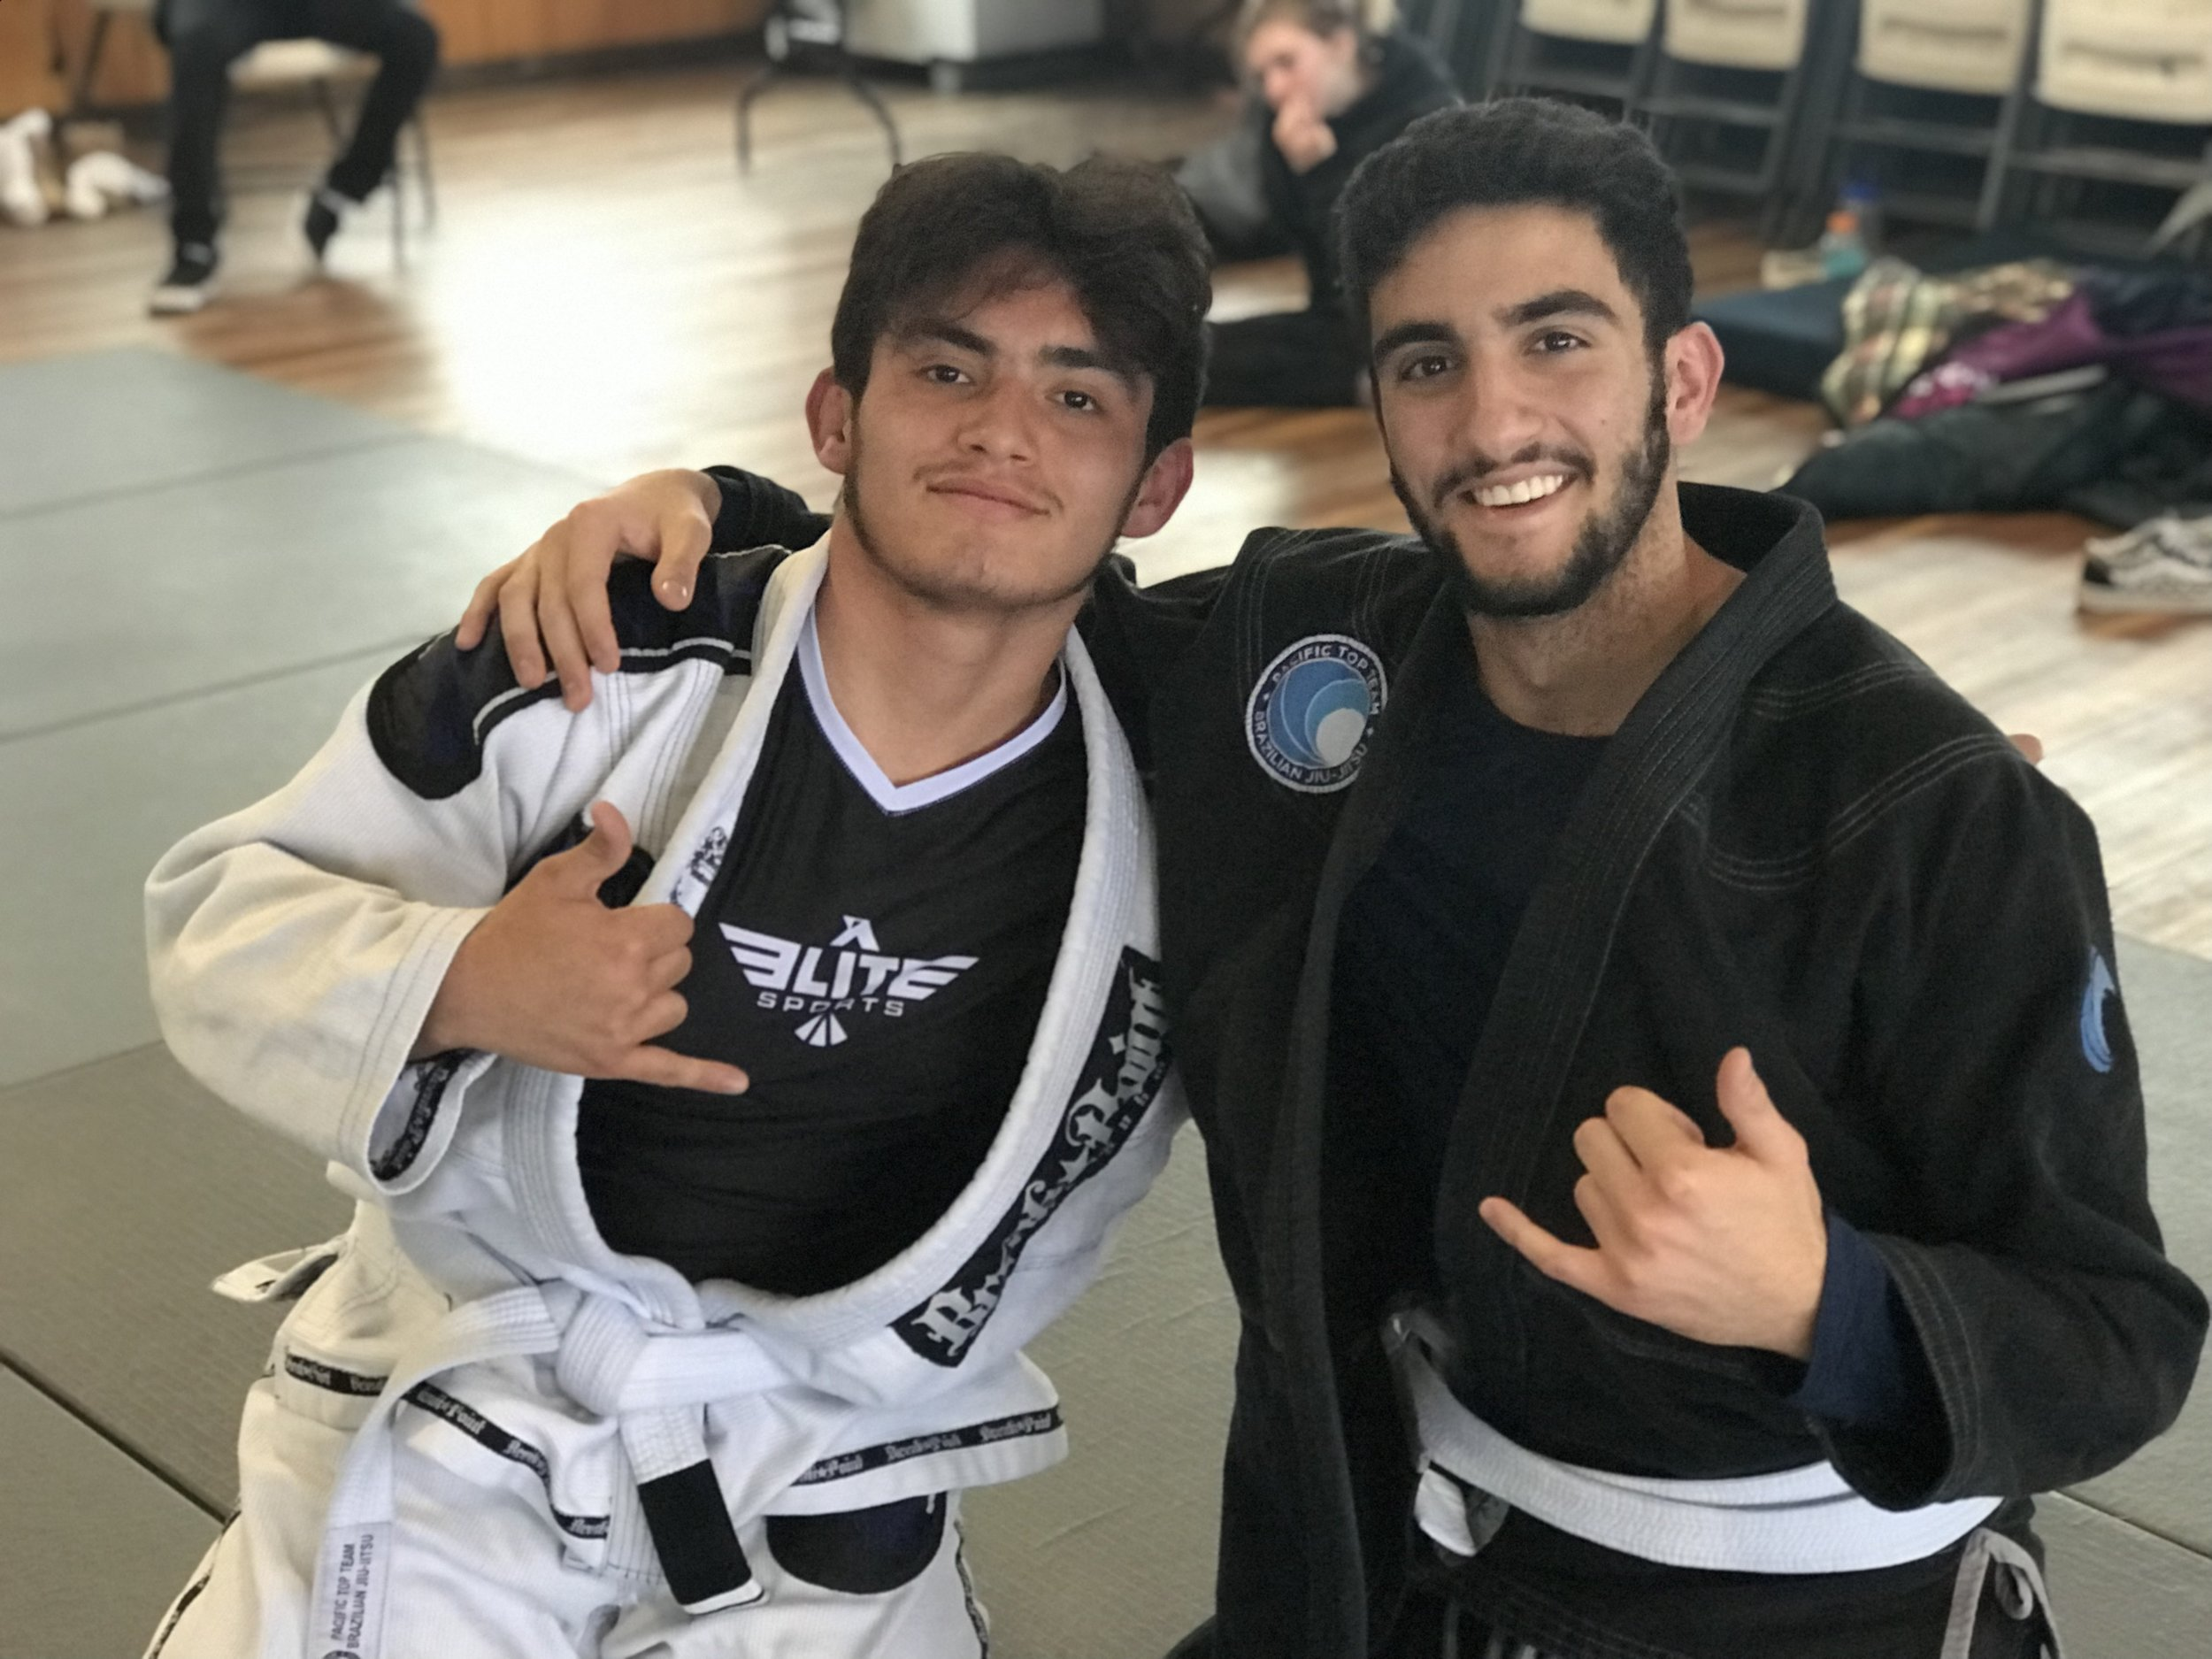 bjj california brazilian jiu jitsu training camp